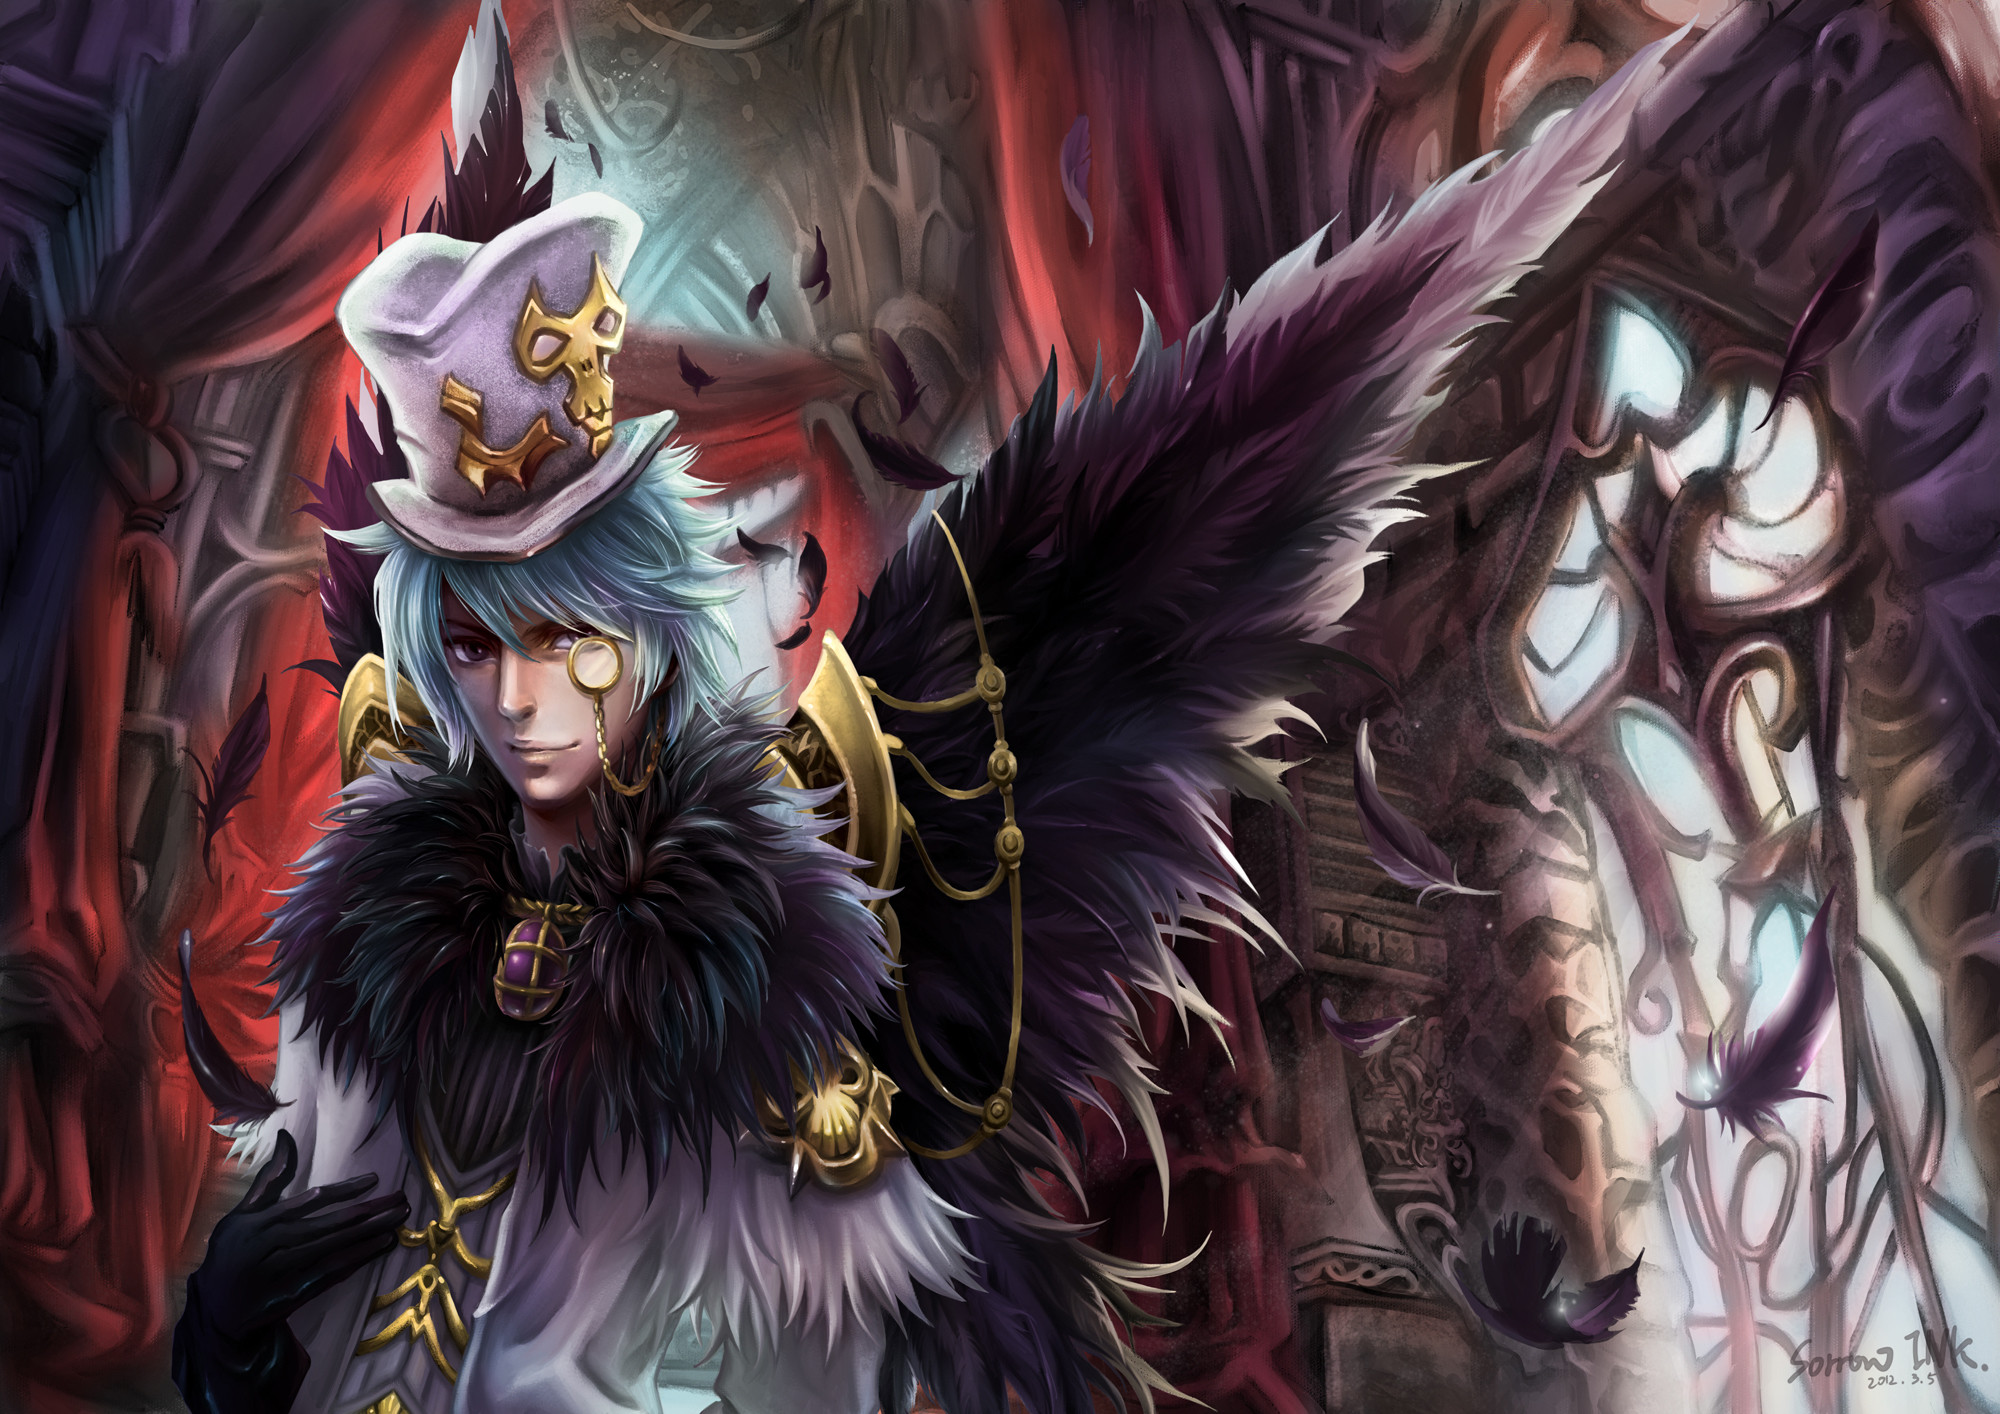 Res: 2000x1414, Dragon Nest Wallpaper 1920x1080 Dragon Nest Hd Wallpapers Background Images  Wallpaper Abyss On Shaiya Wallpaper Images